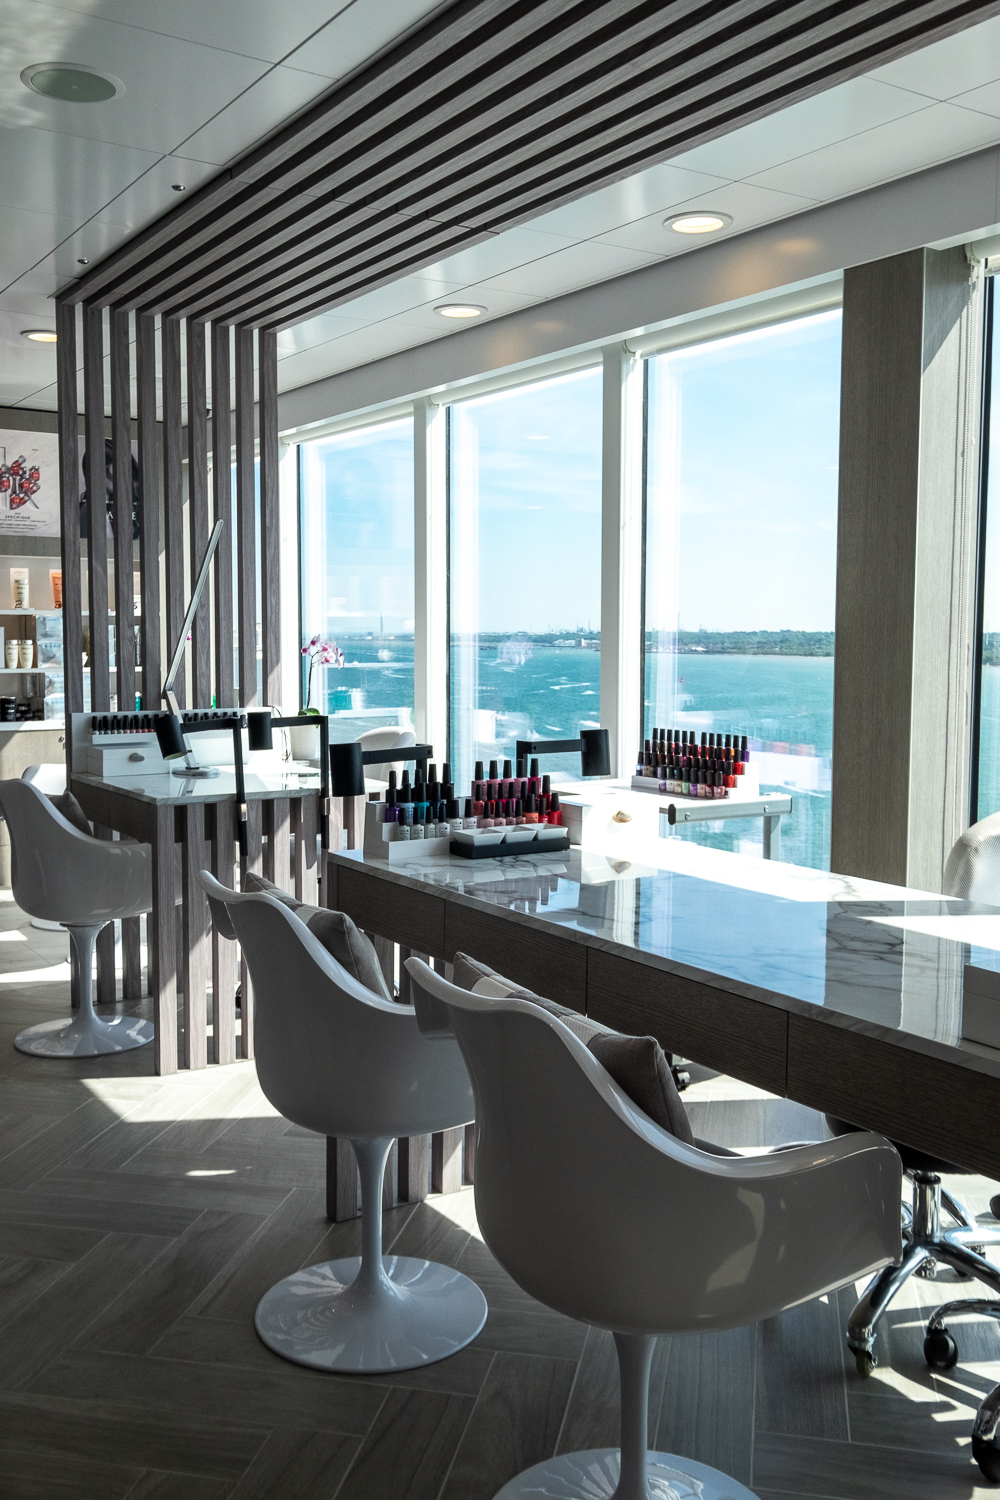 The Spa | 12 reasons to choose Celebrity Edge for your next cruise | Mondomulia